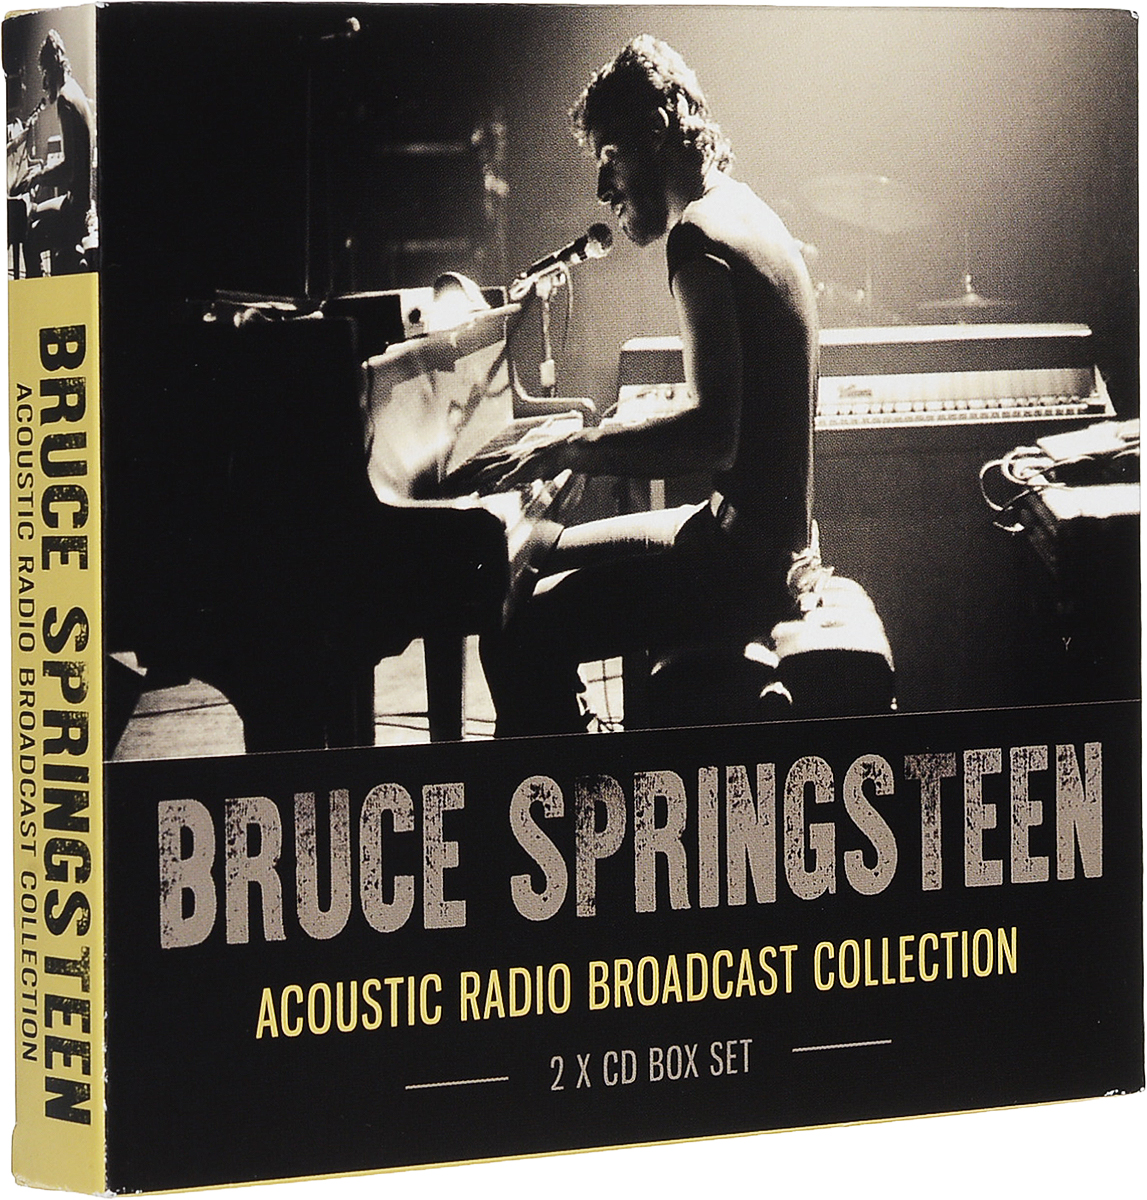 Брюс Спрингстин Bruce Springsteen. Acoustic Radio Broadcast Collection (2 CD) лента brother tze651 24мм черный шрифт желтый фон 8м